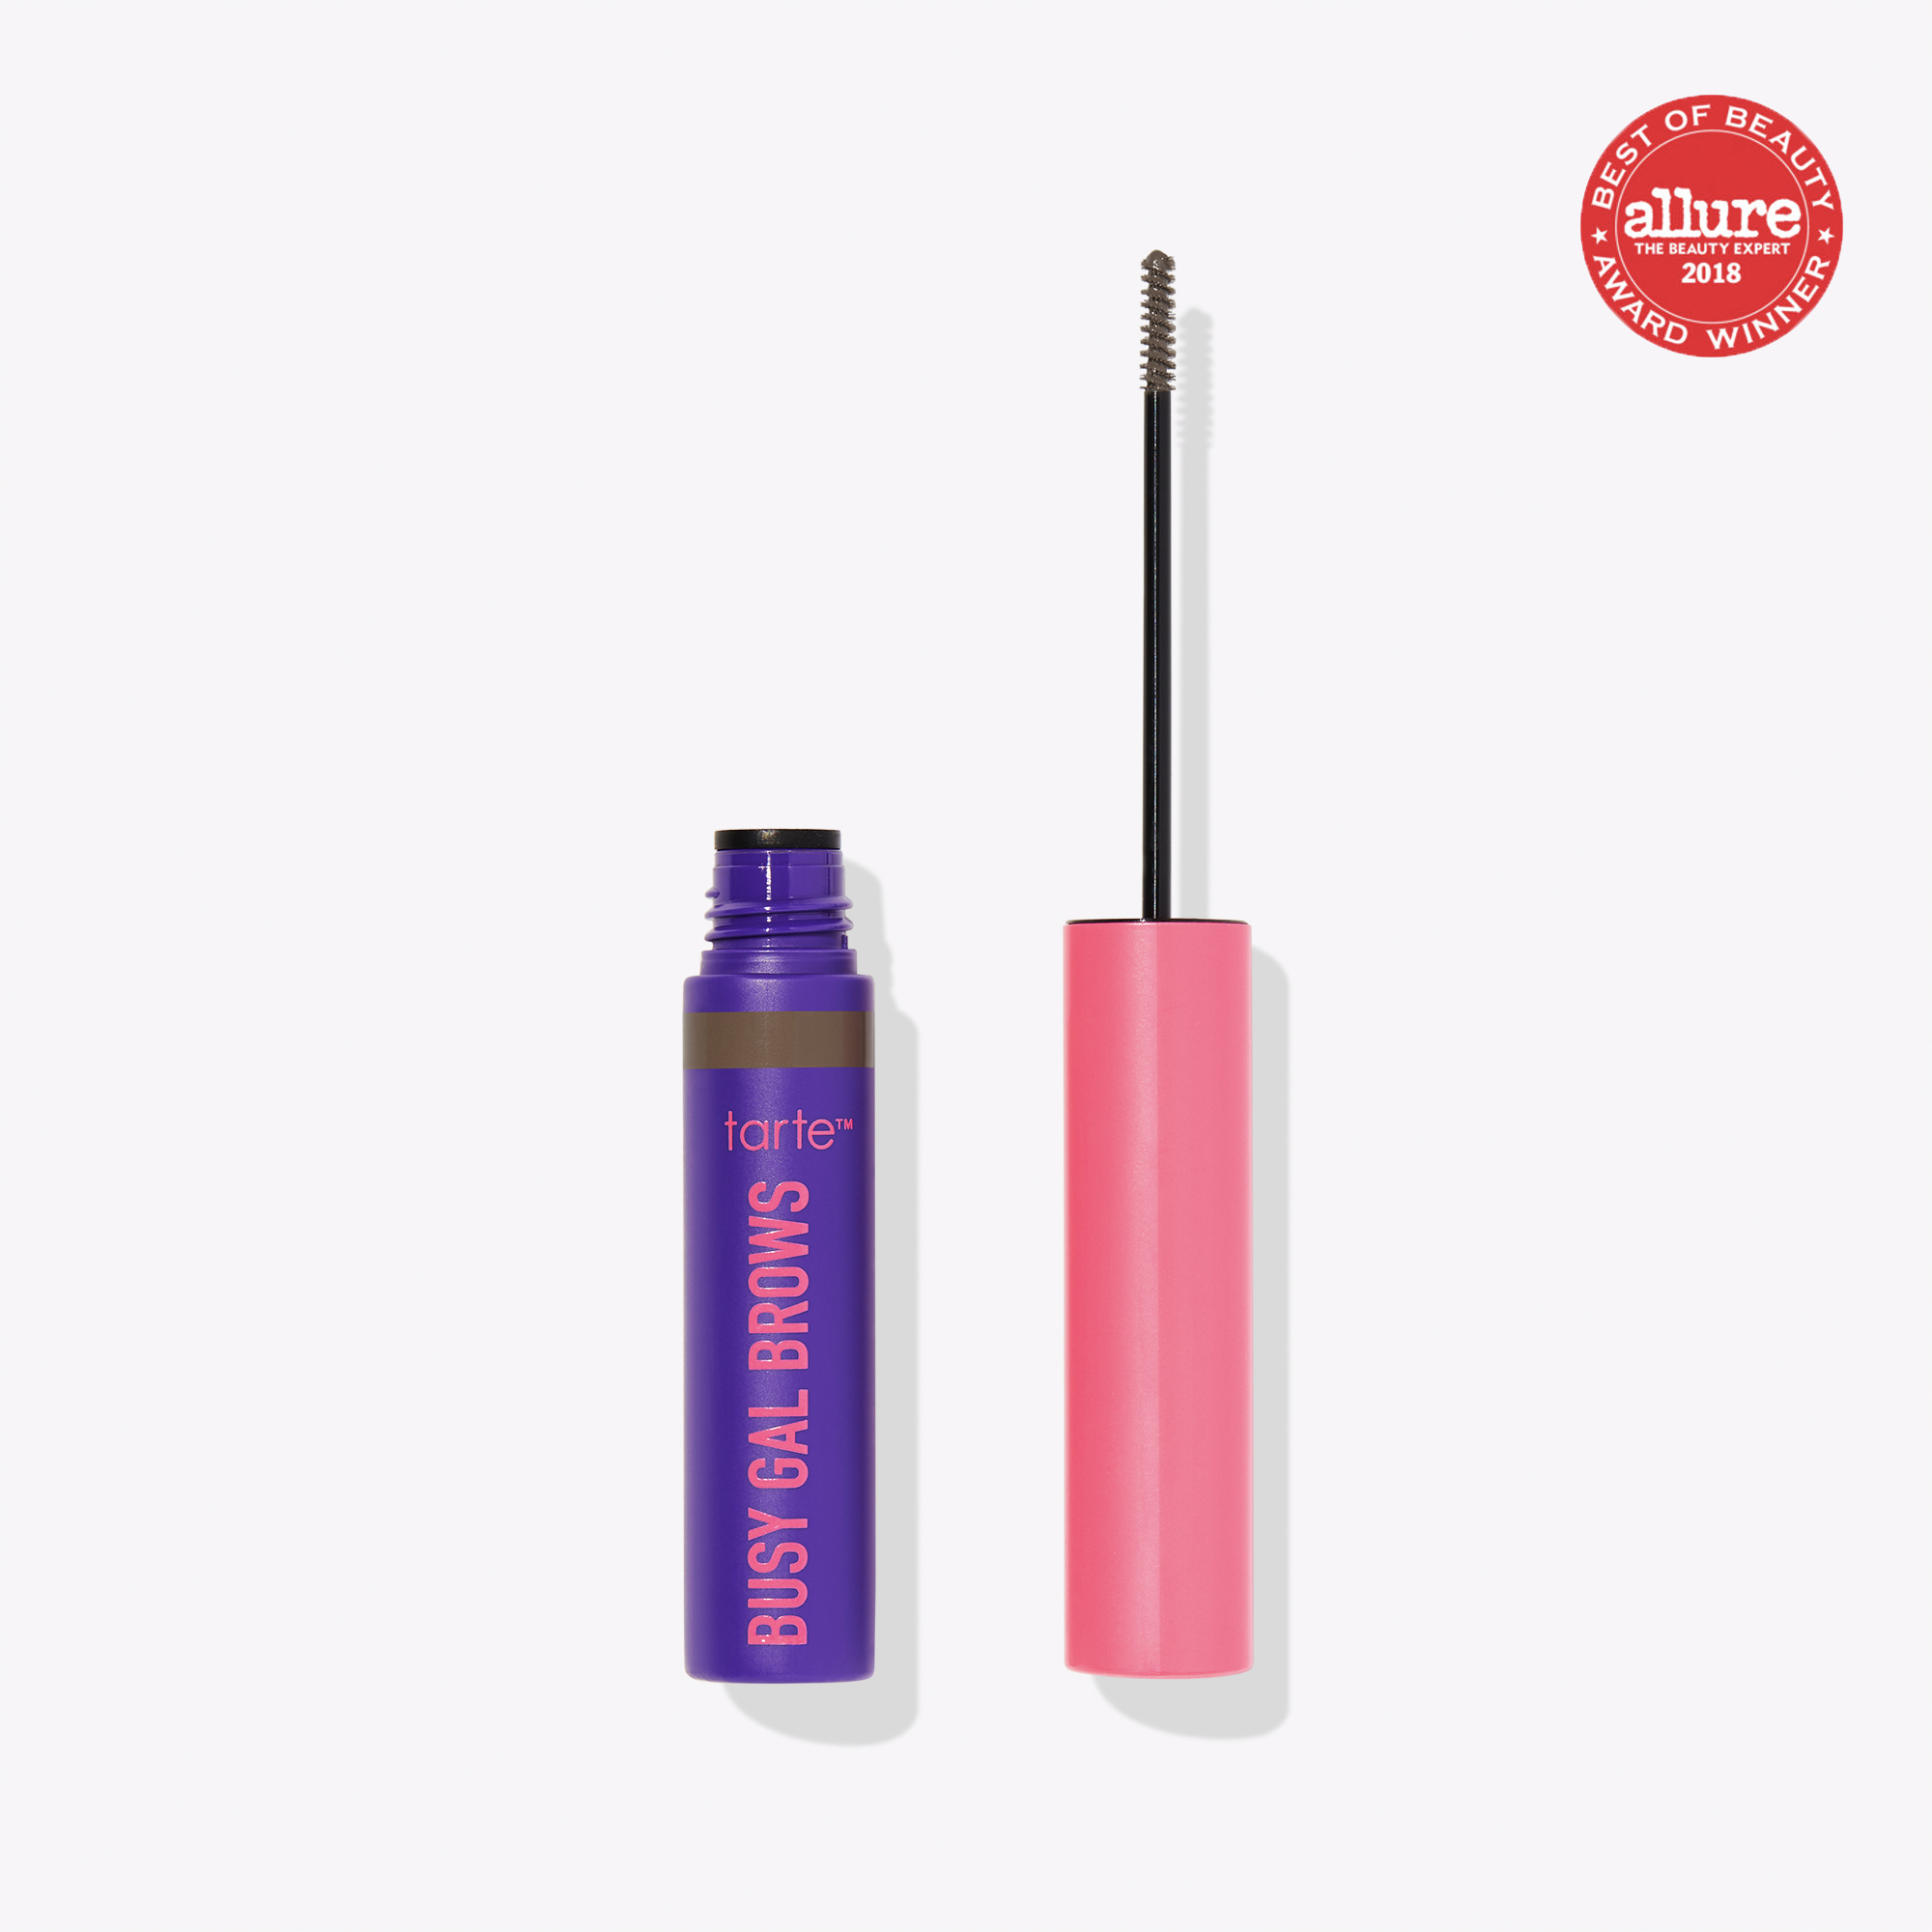 a0135a52f busy gal BROWS tinted brow gel busy gal BROWS tinted brow gel